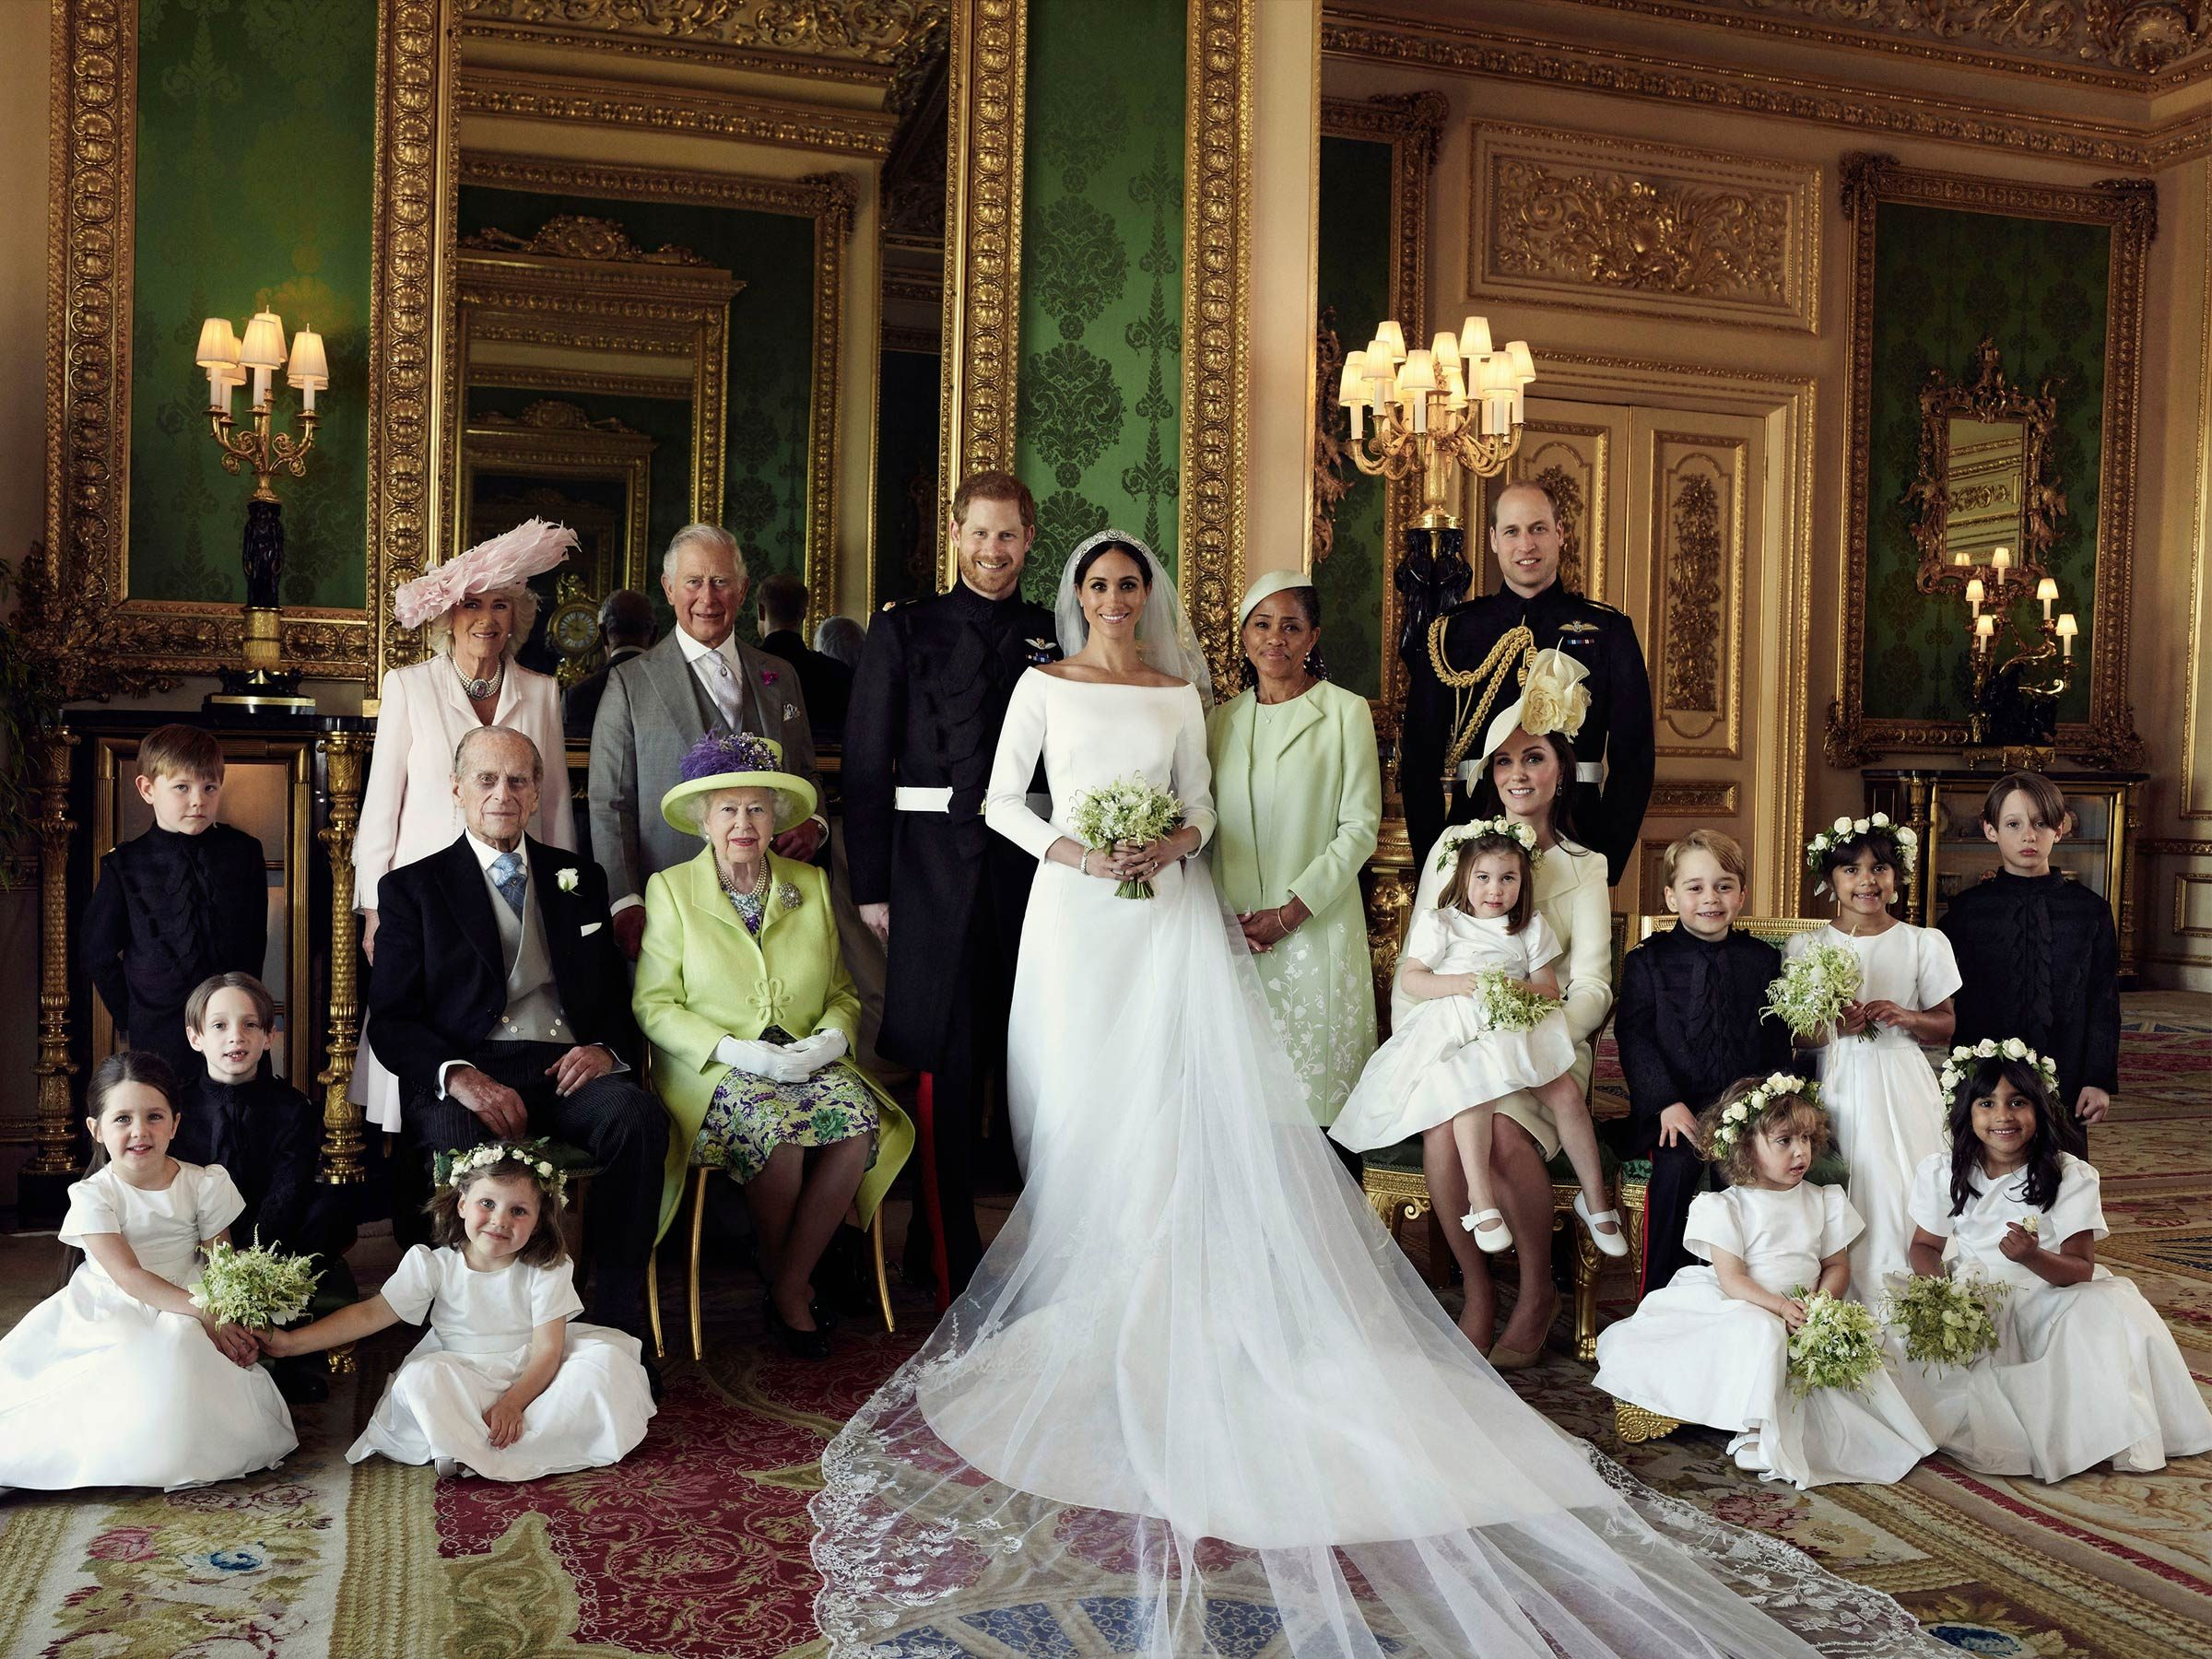 01-royal-wedding-official-photos-Alexi-Lubomirski-AP-REX-Shutterstock